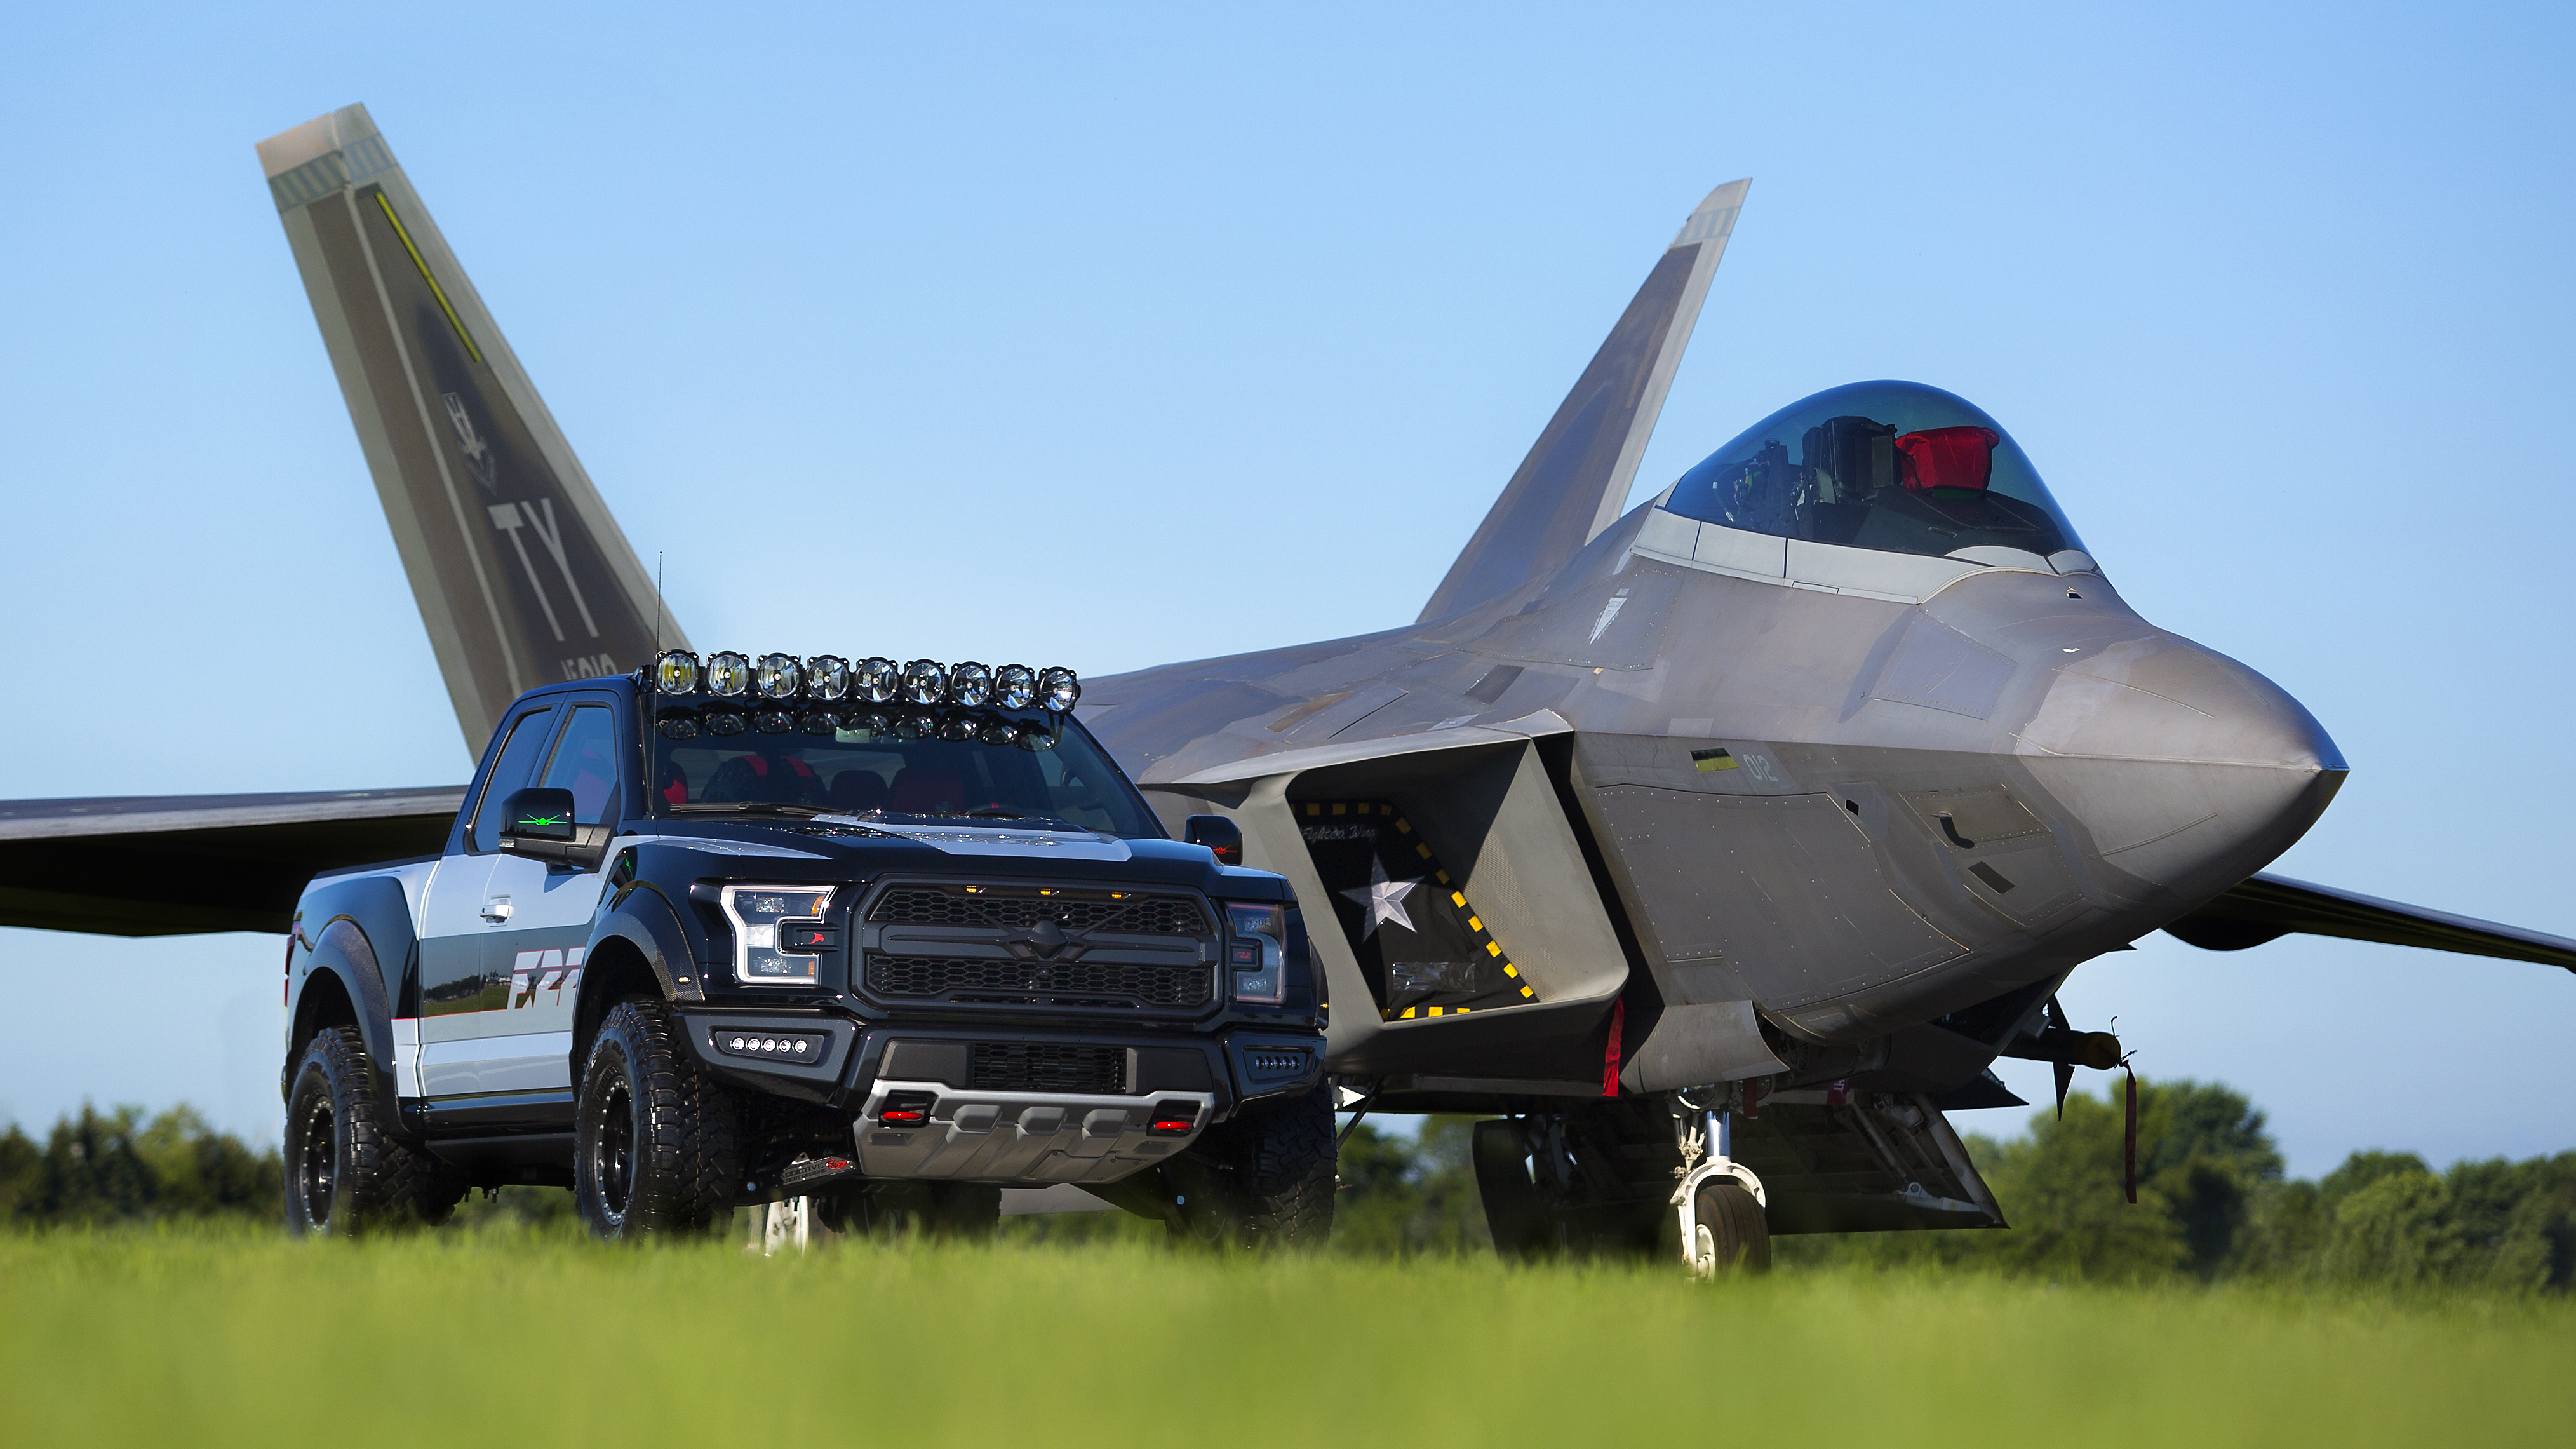 Ford F-150 Raptor next to F-150 fighter jet